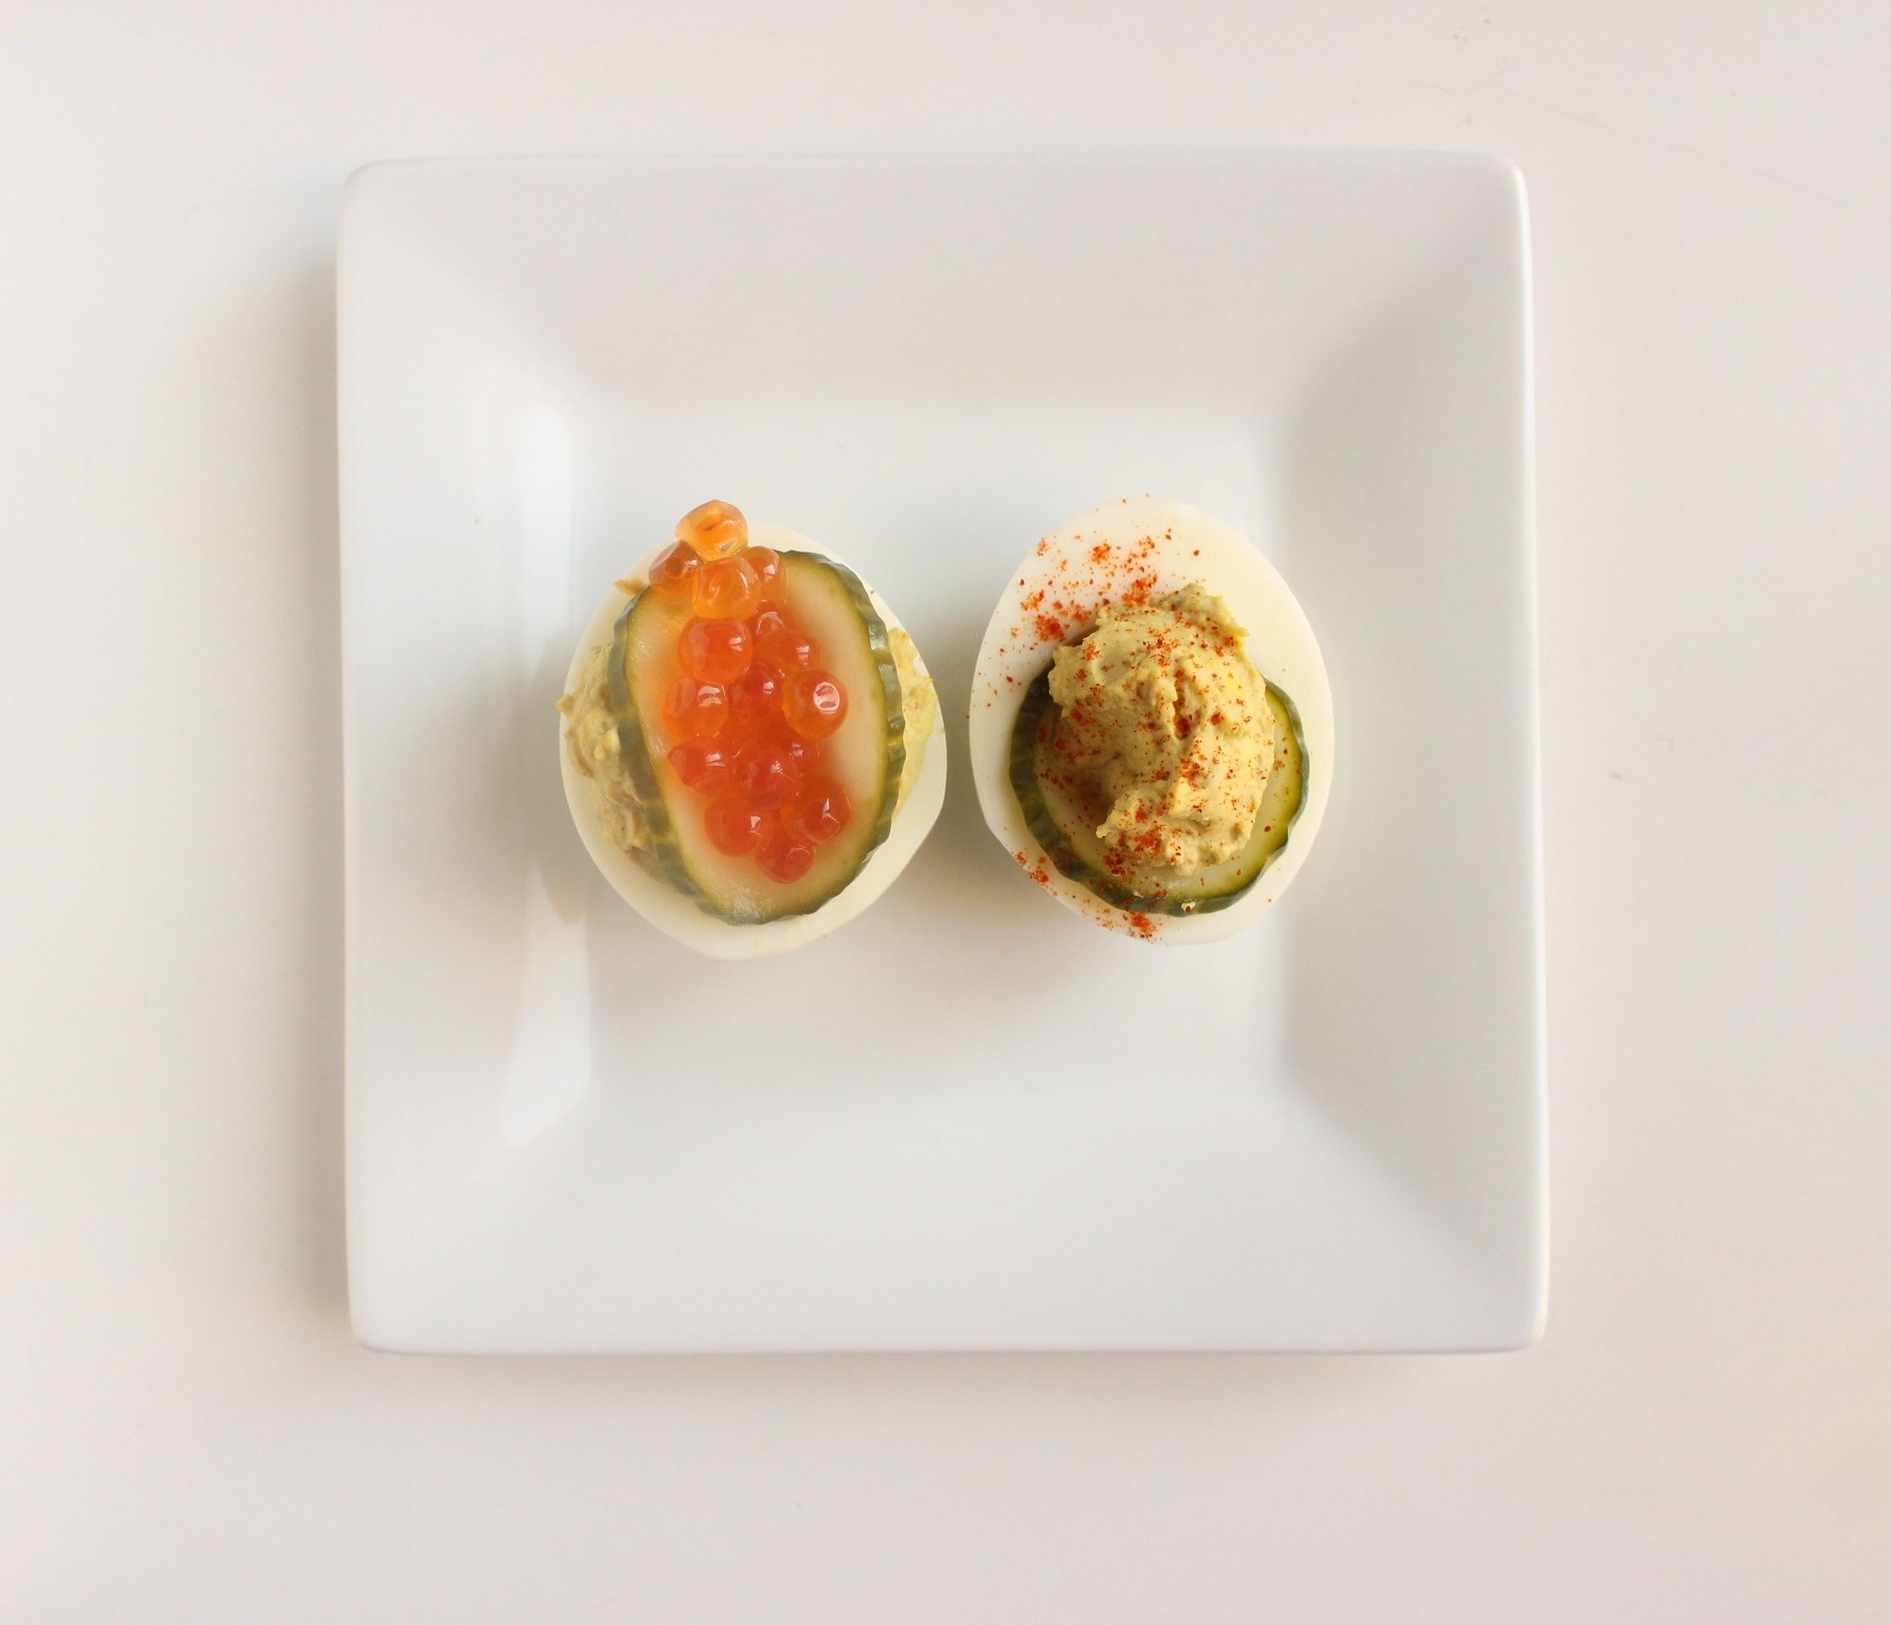 Deviled eggs | Me & The Moose. These deviled eggs provide a tasty hit of salt and protein to satisfy snack cravings. #meandthemoose #whole30 #whole30recipes #deviledeggs #snacks #snackrecipes